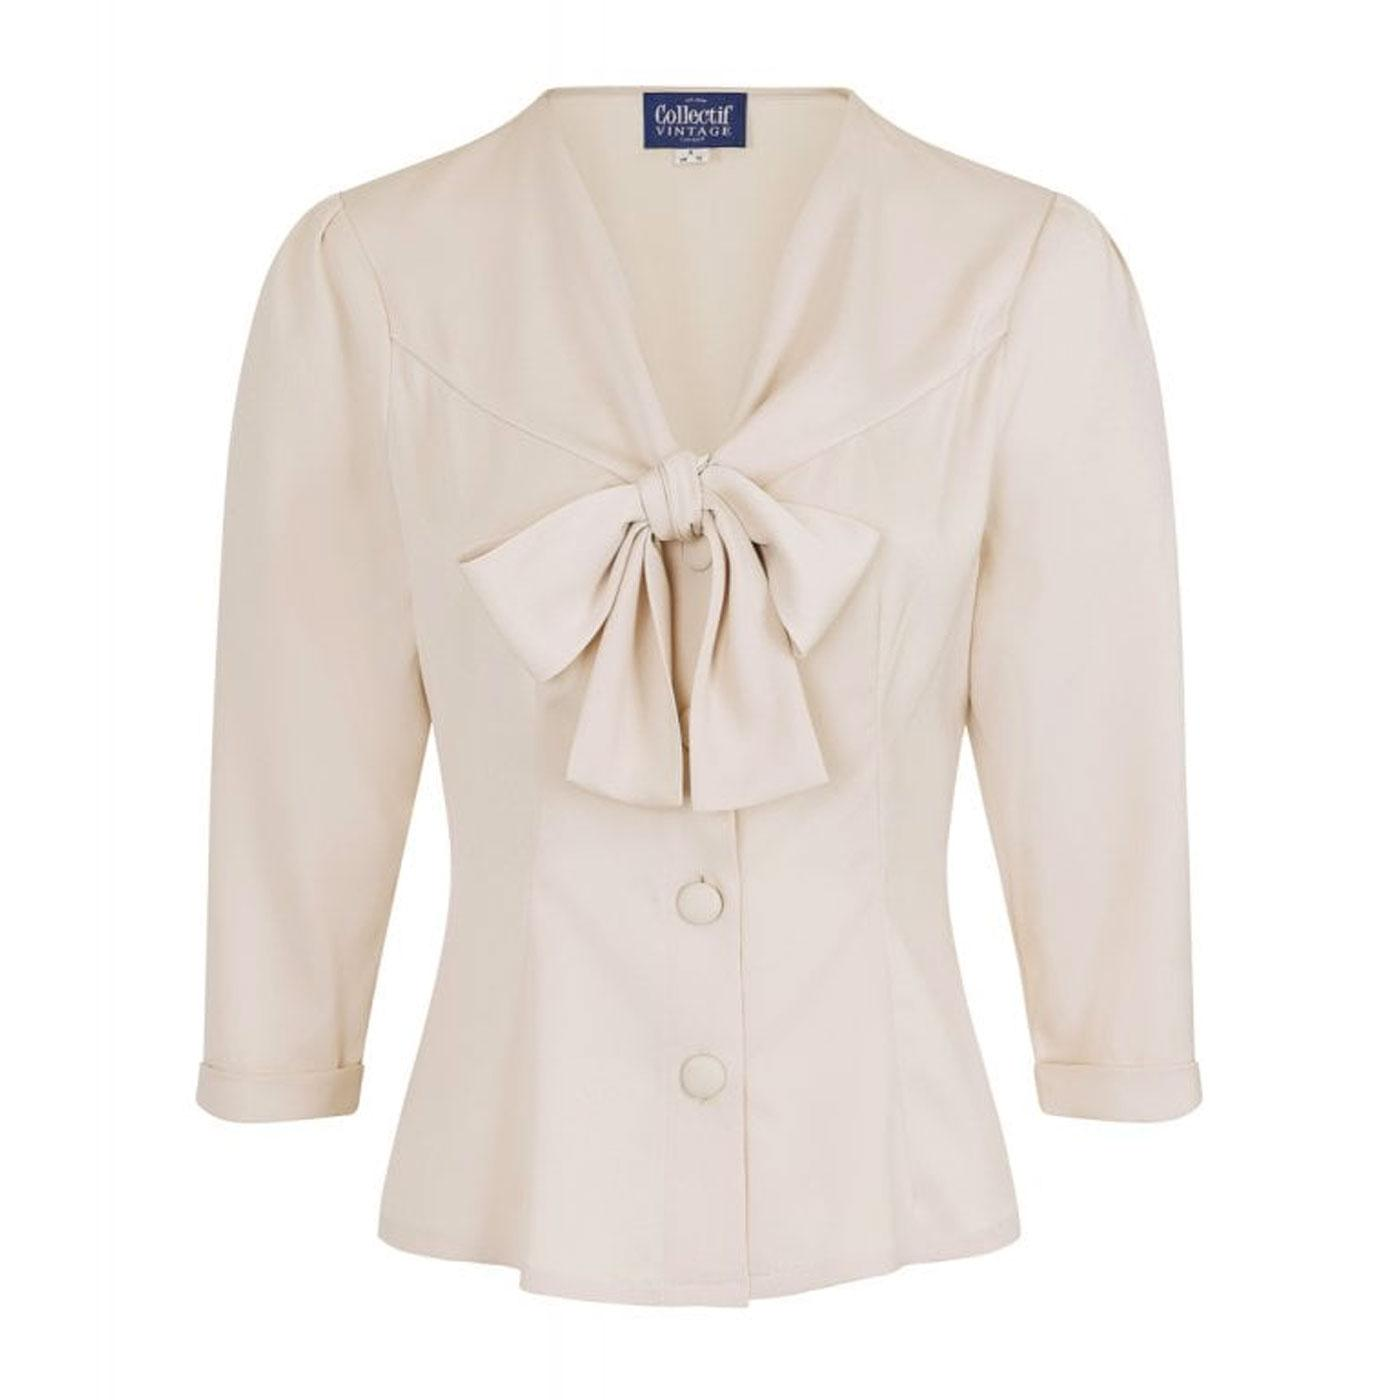 Andra COLLECTIF Plain Vintage 50s Blouse In Cream